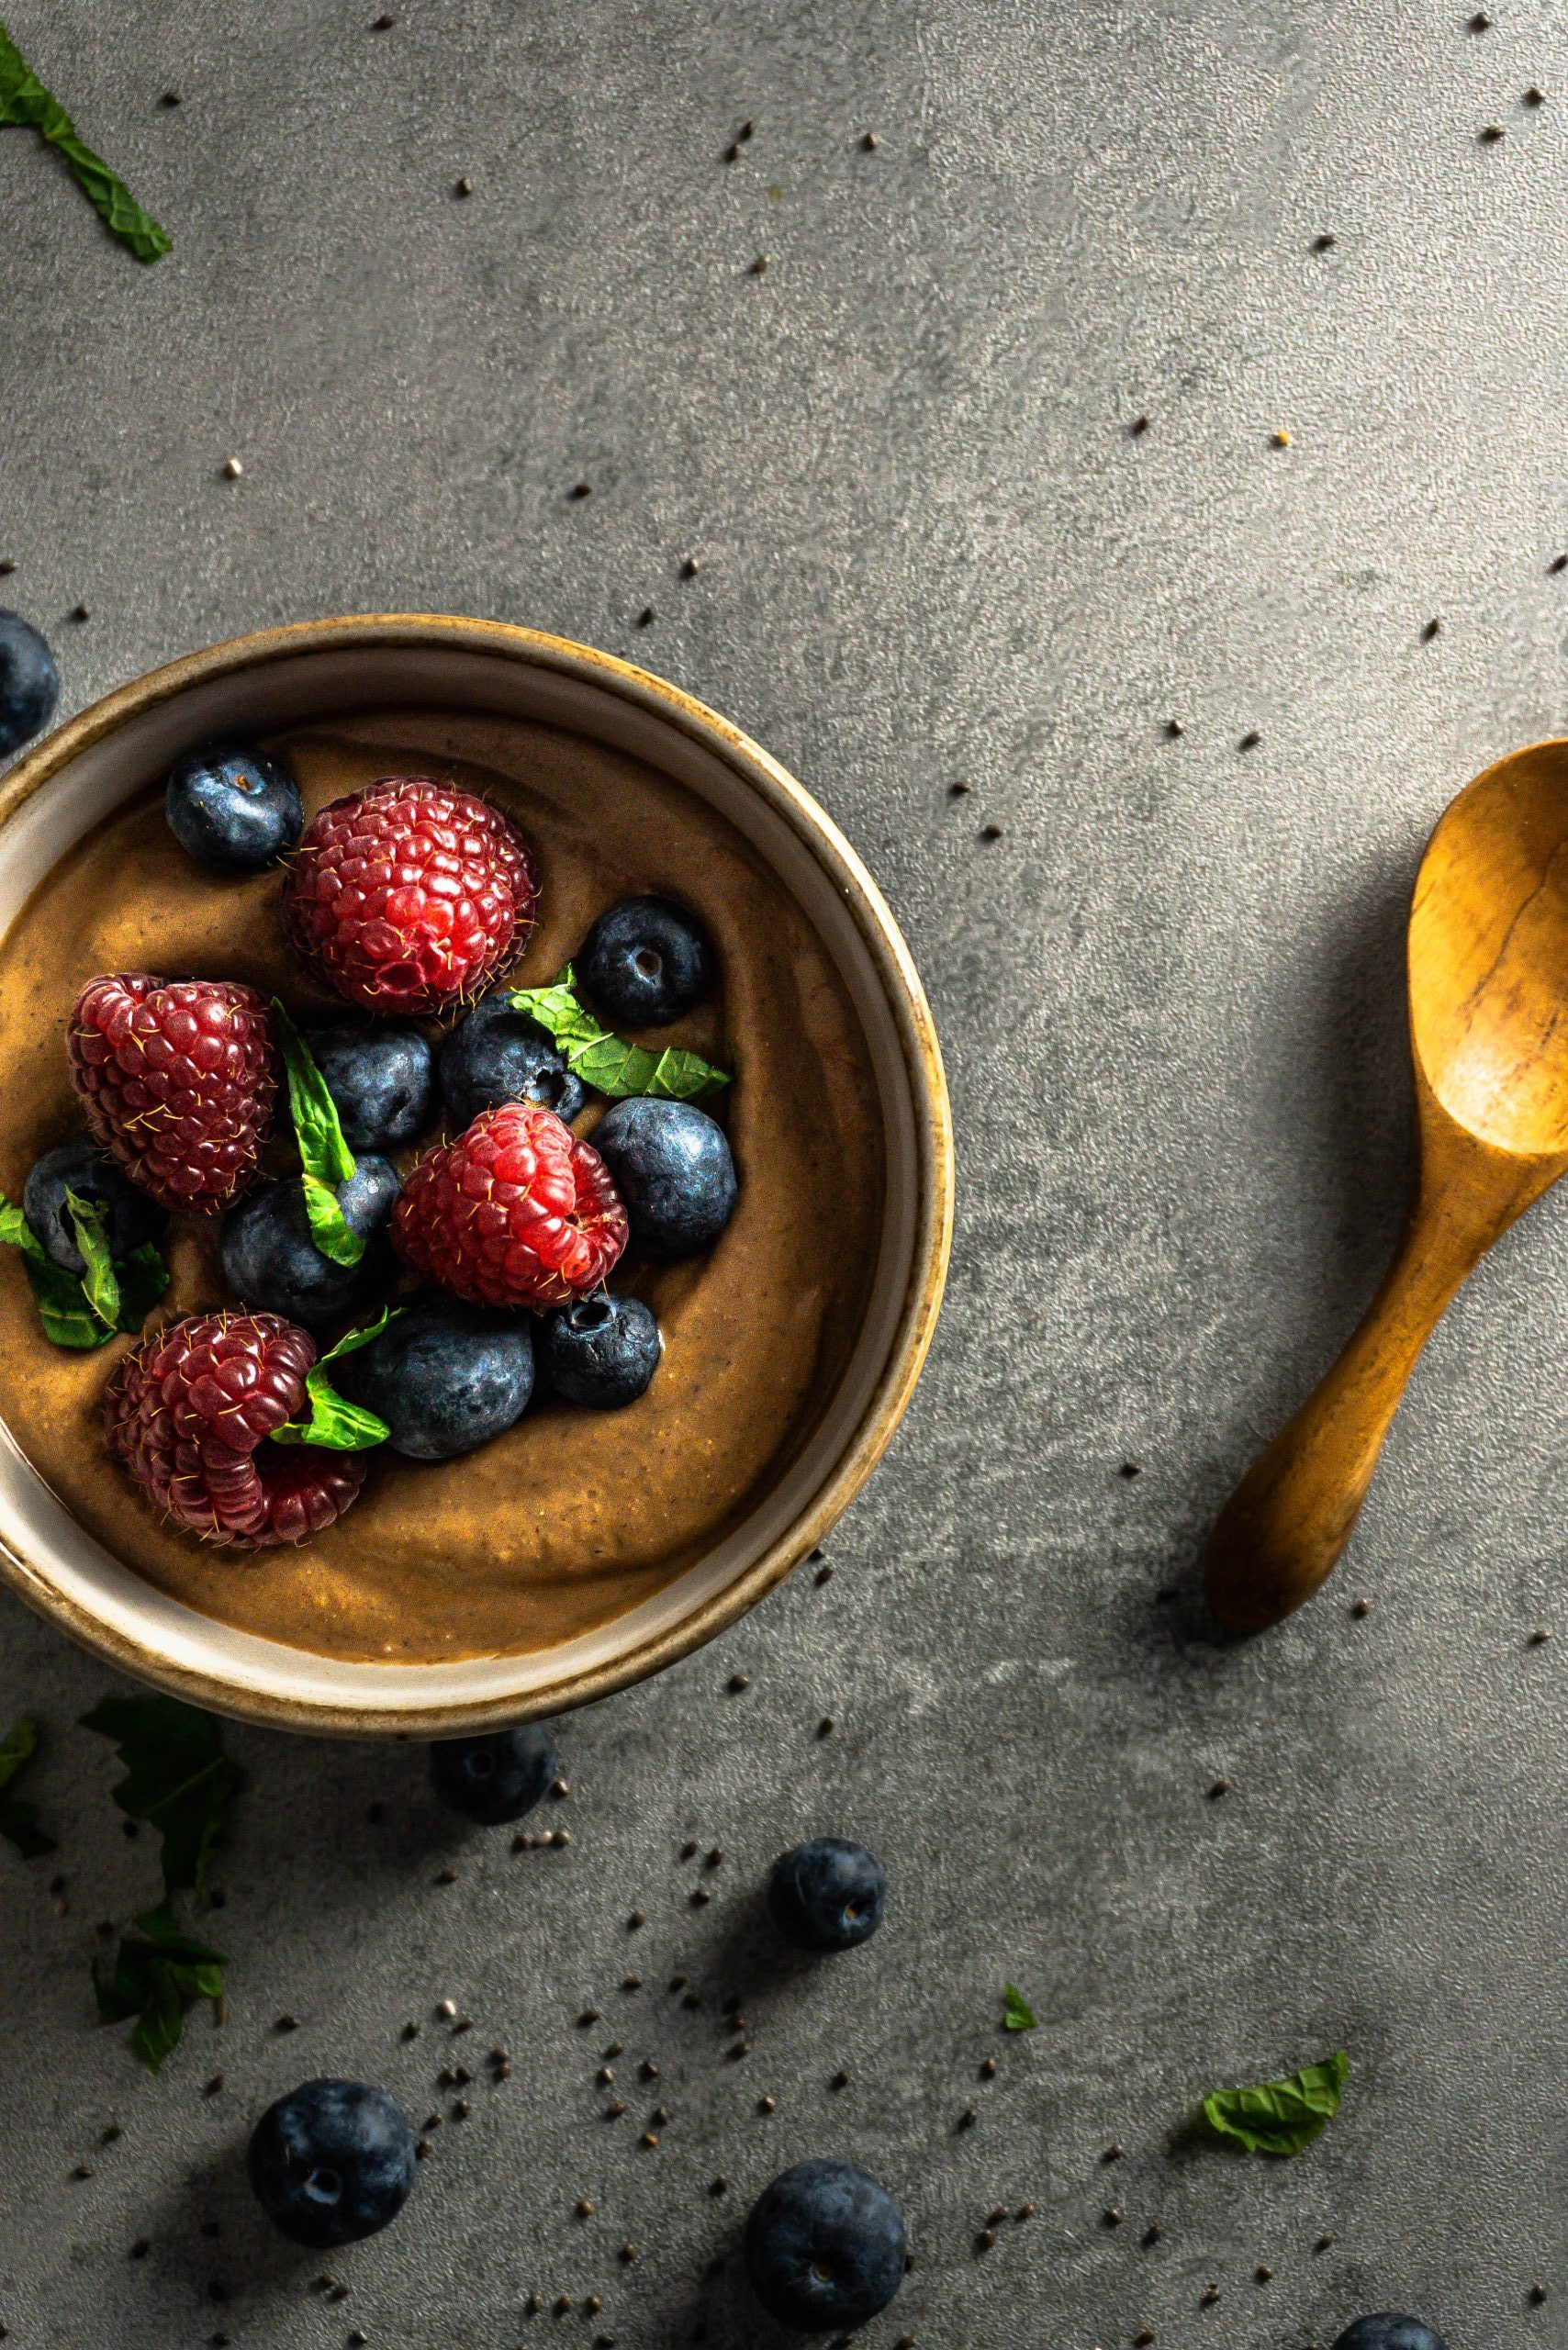 Chocolate Chia Seed Pudding in a bowl, topped with blueberries, raspberries, mint leaves. Photographed overhead on a grey background with blueberries, mint leaves, and chia seeds scattered and a wooden spoon visible